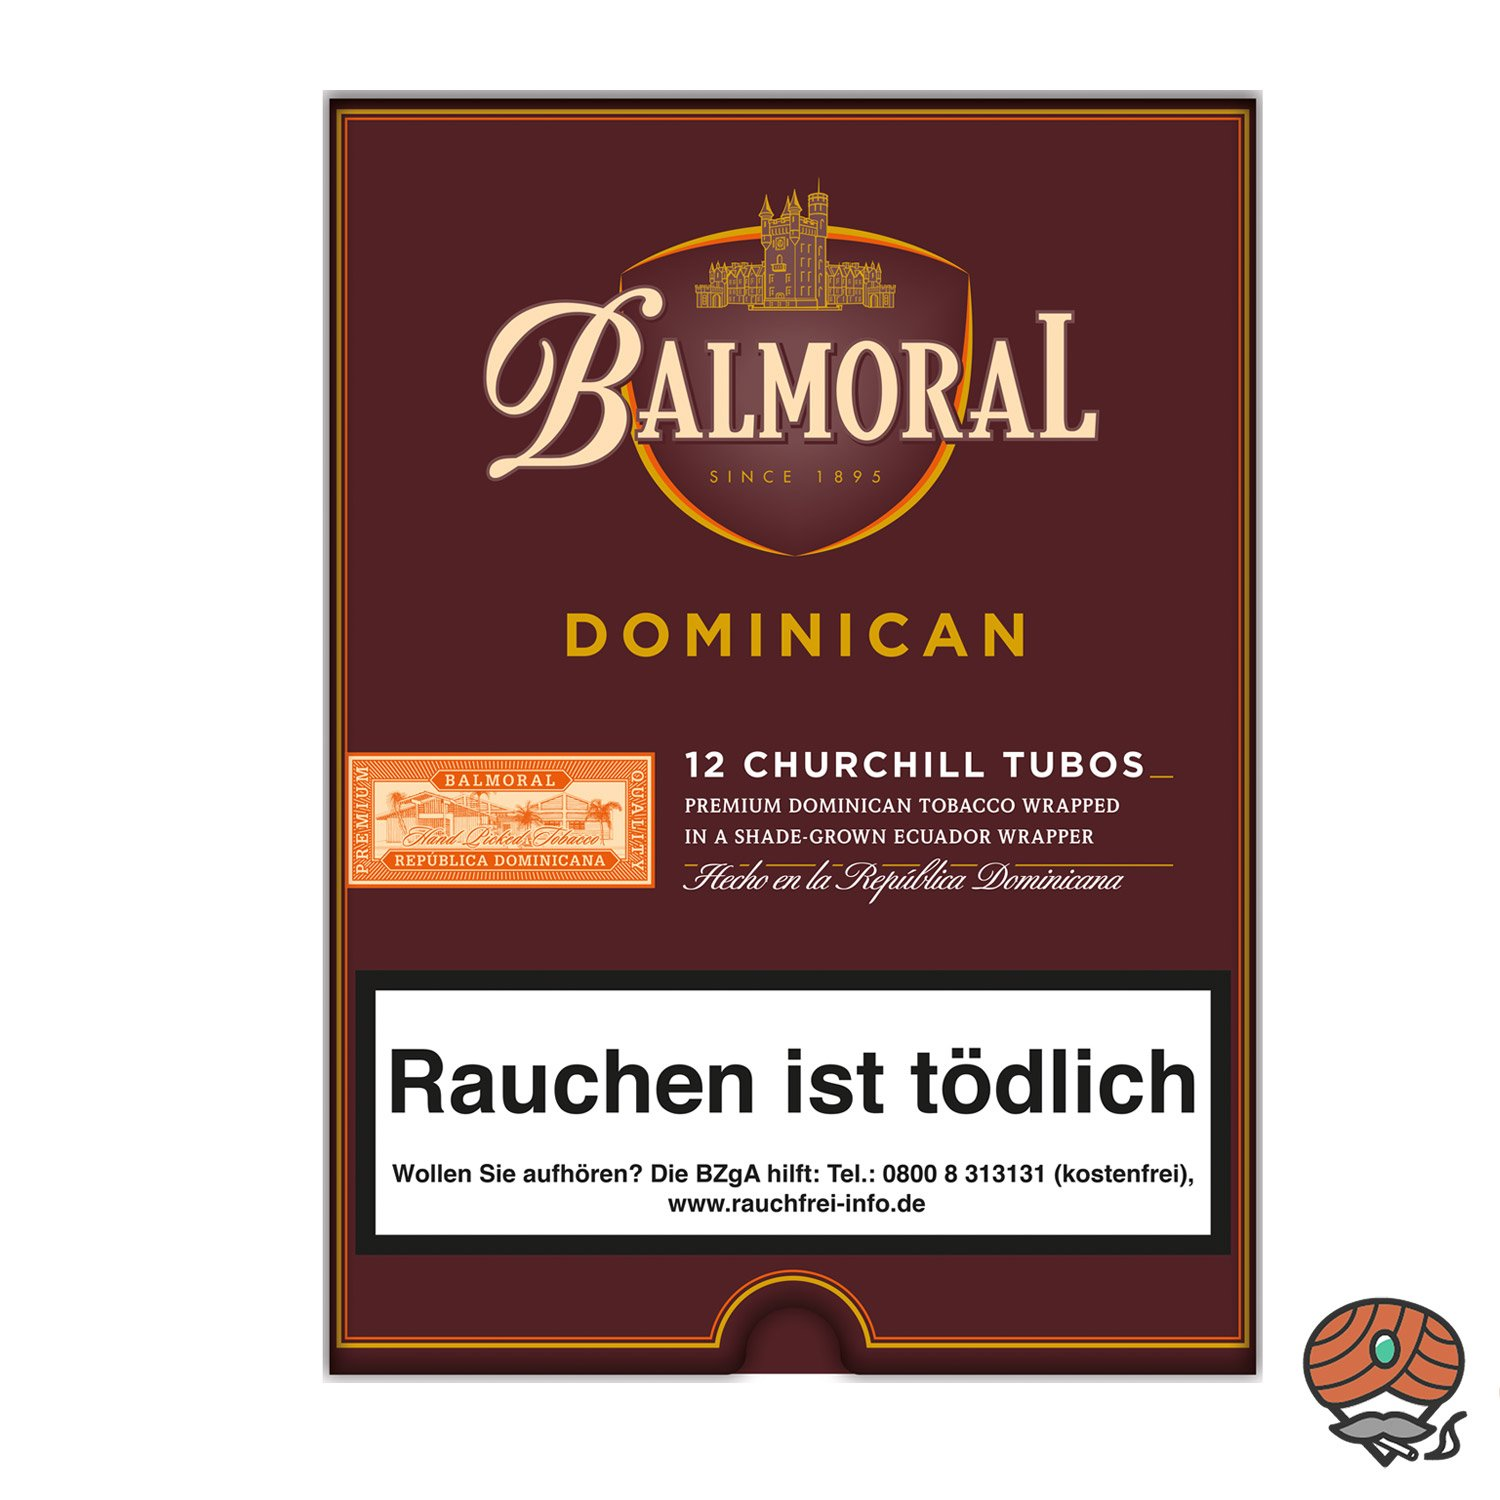 Balmoral Dominican Selection Churchill Tubos Zigarren, 12 Stück